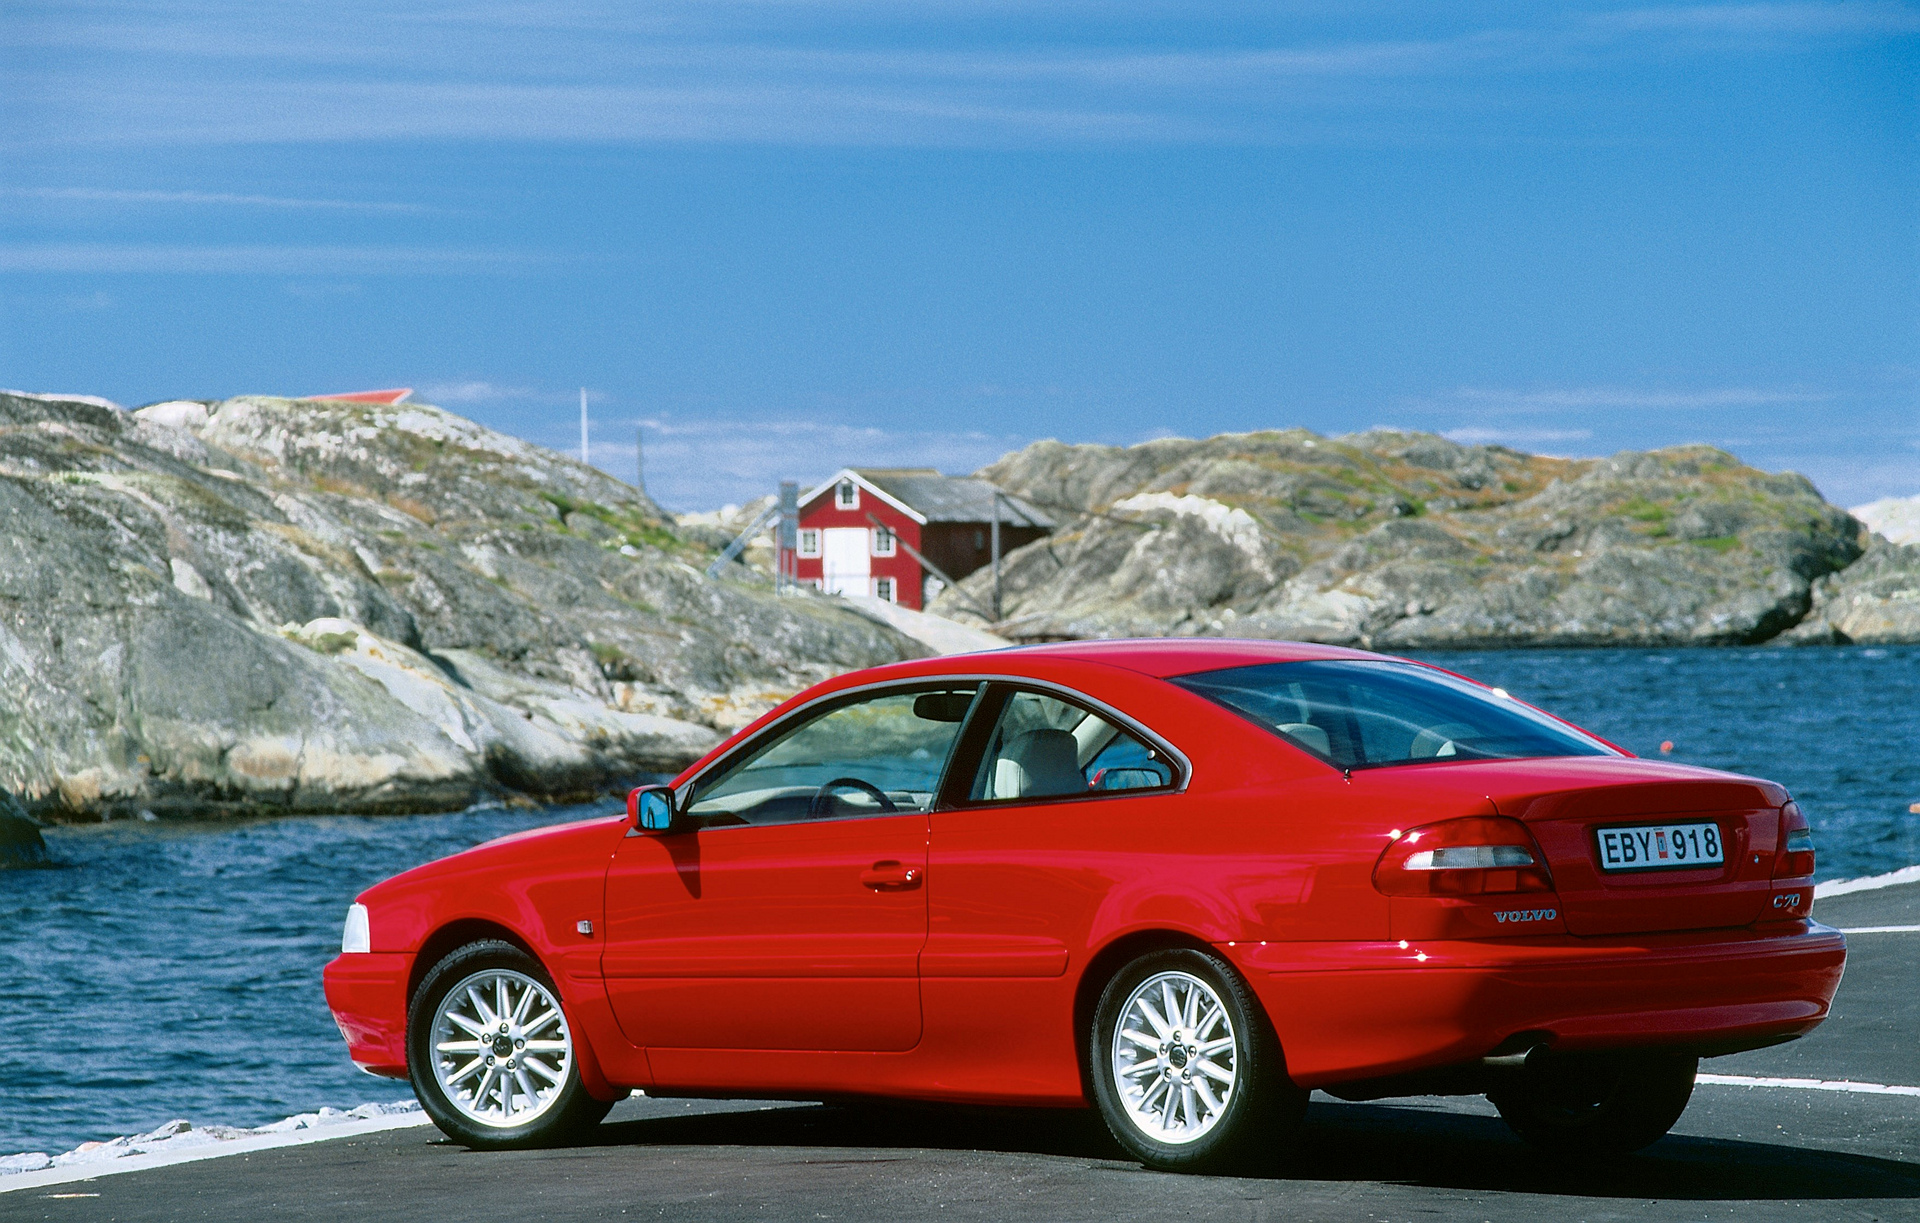 Volvo C70 Coupé © Zhejiang Geely Holding Group Co., Ltd